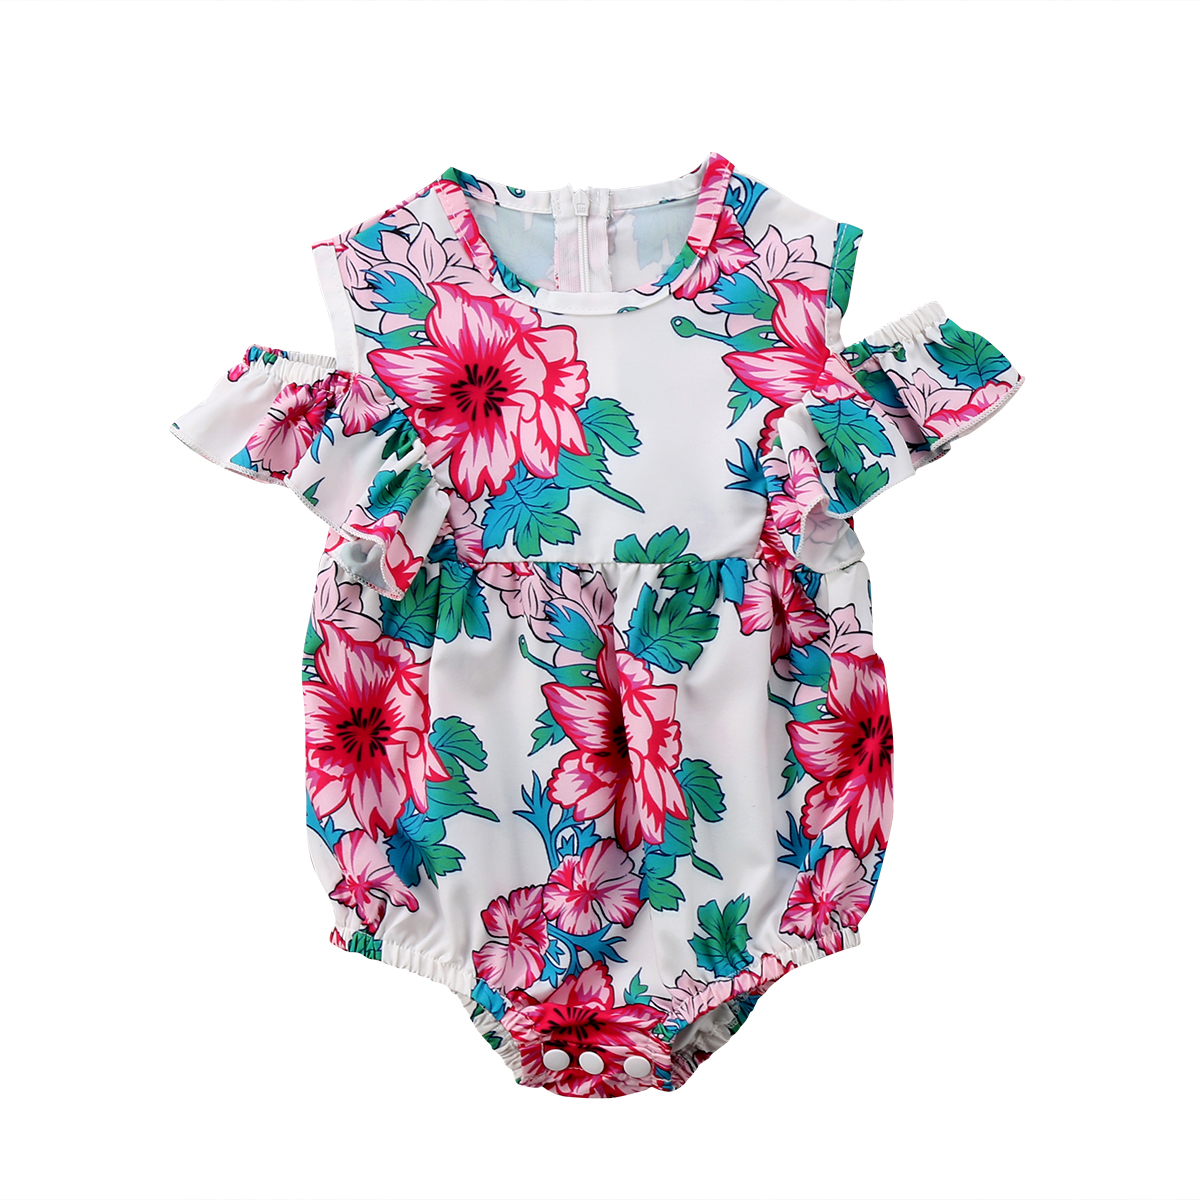 Kids Baby Girls Floral Short Sleeve Romper Jumpsuit Casual Outfit Clothes Summer Baby Rompers